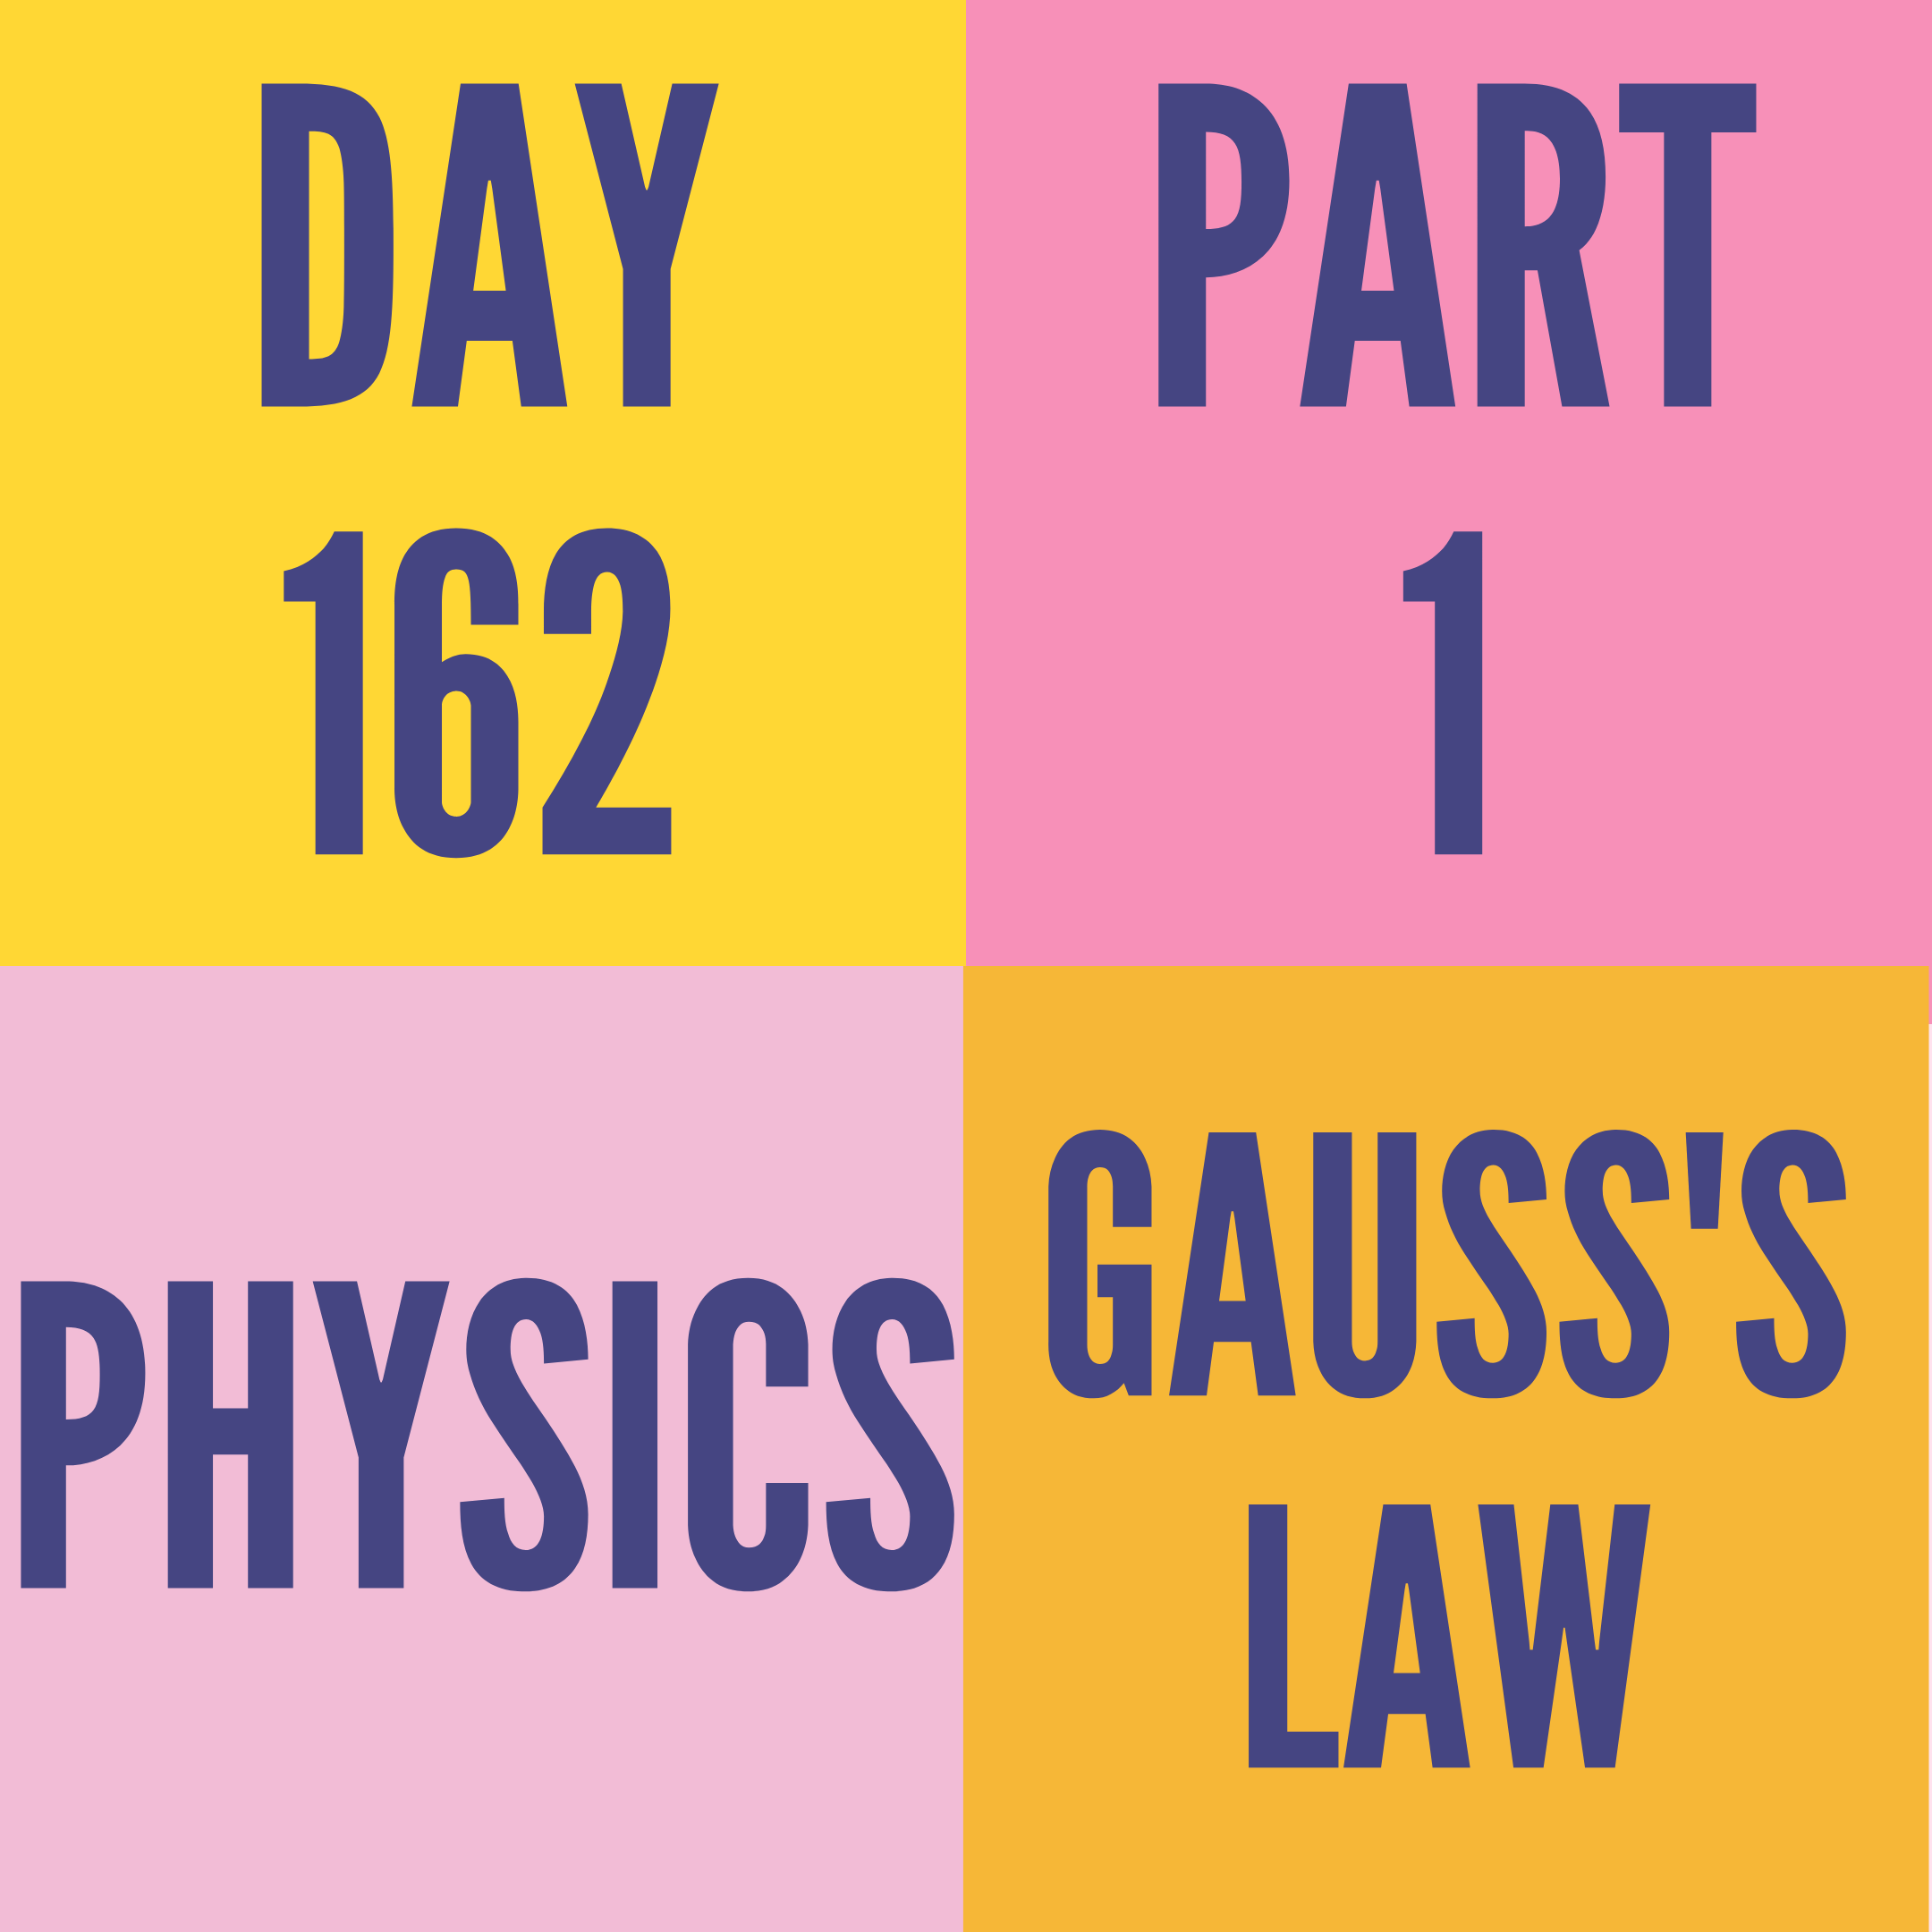 DAY-162 PART-1 GAUSS'S LAW